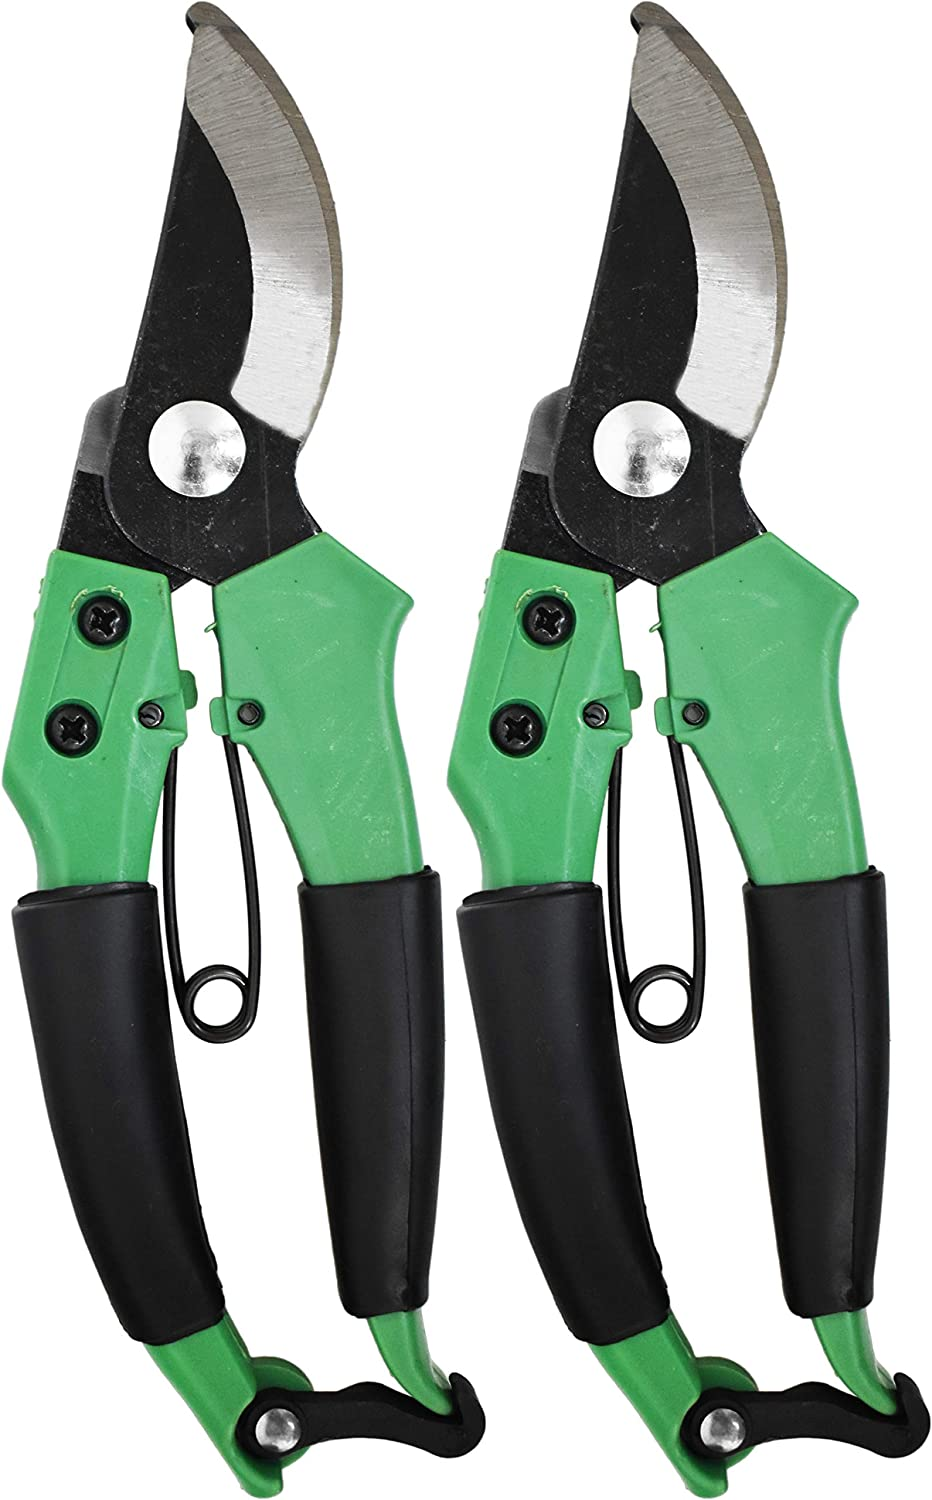 1.75 Long Blade 2 Rubber Grips on Handles Ergonomic Garden Clippers Cushioning Rubber Grips on Scissor Handles 2 7.5 Pruning Shears Set of